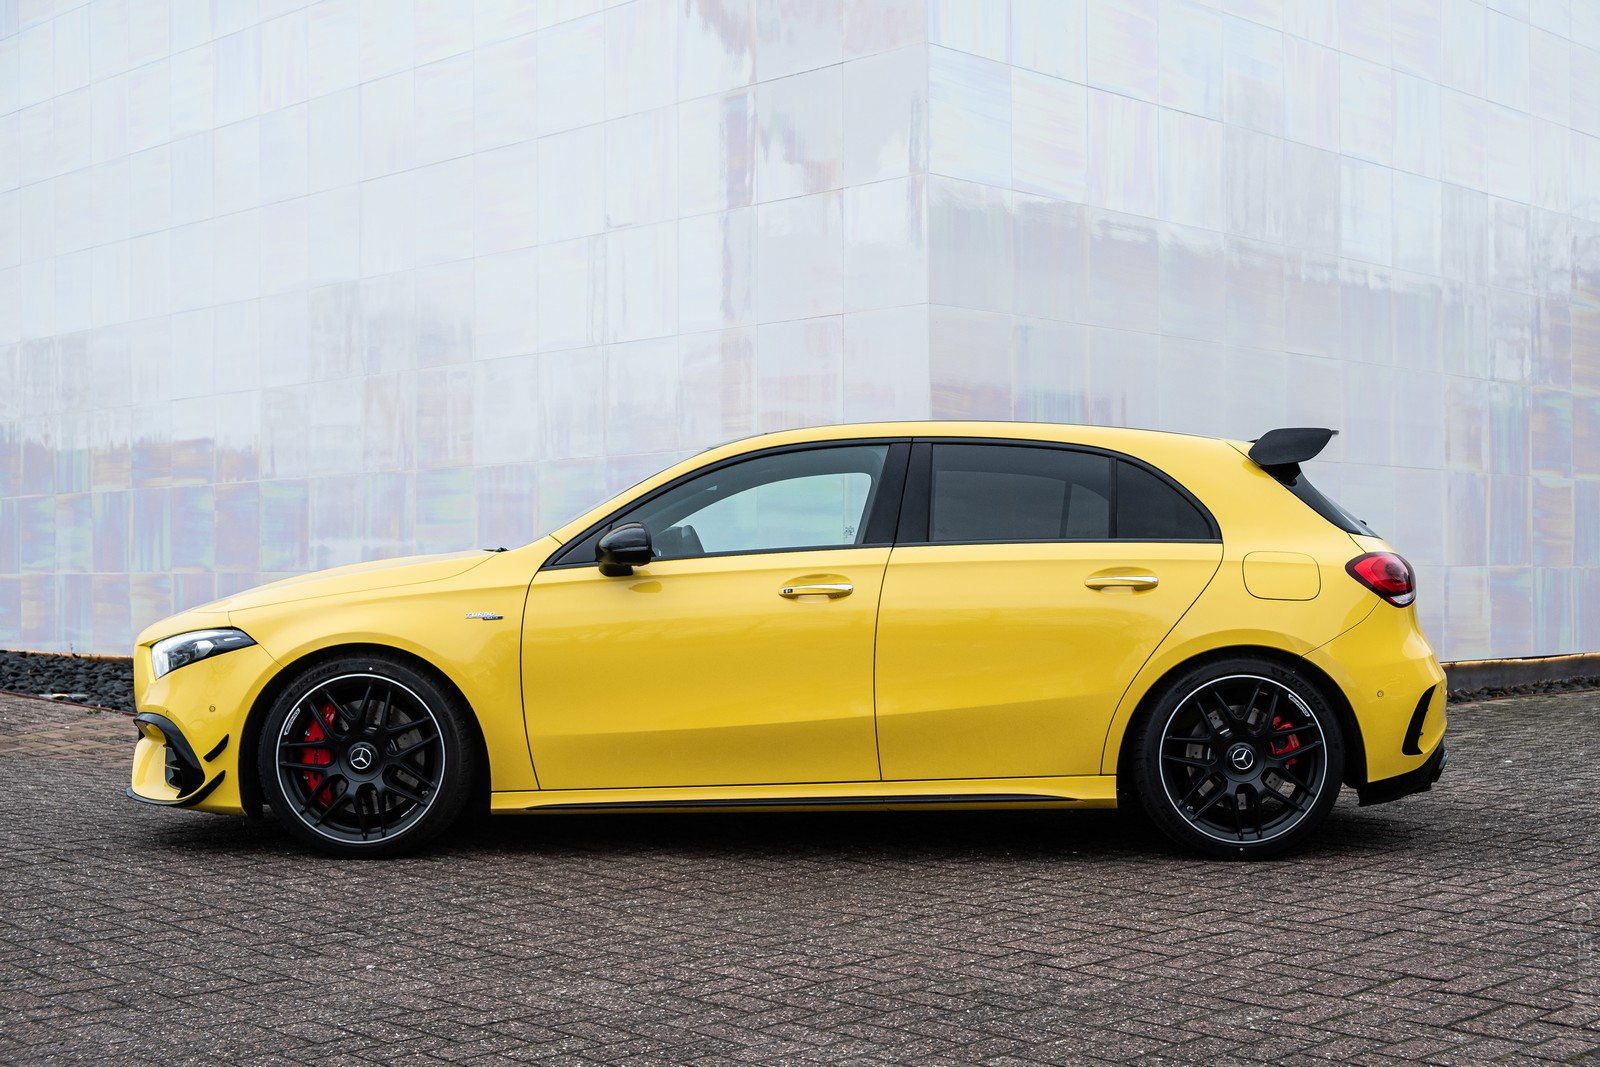 Mercedes-AMG A45 S Side View